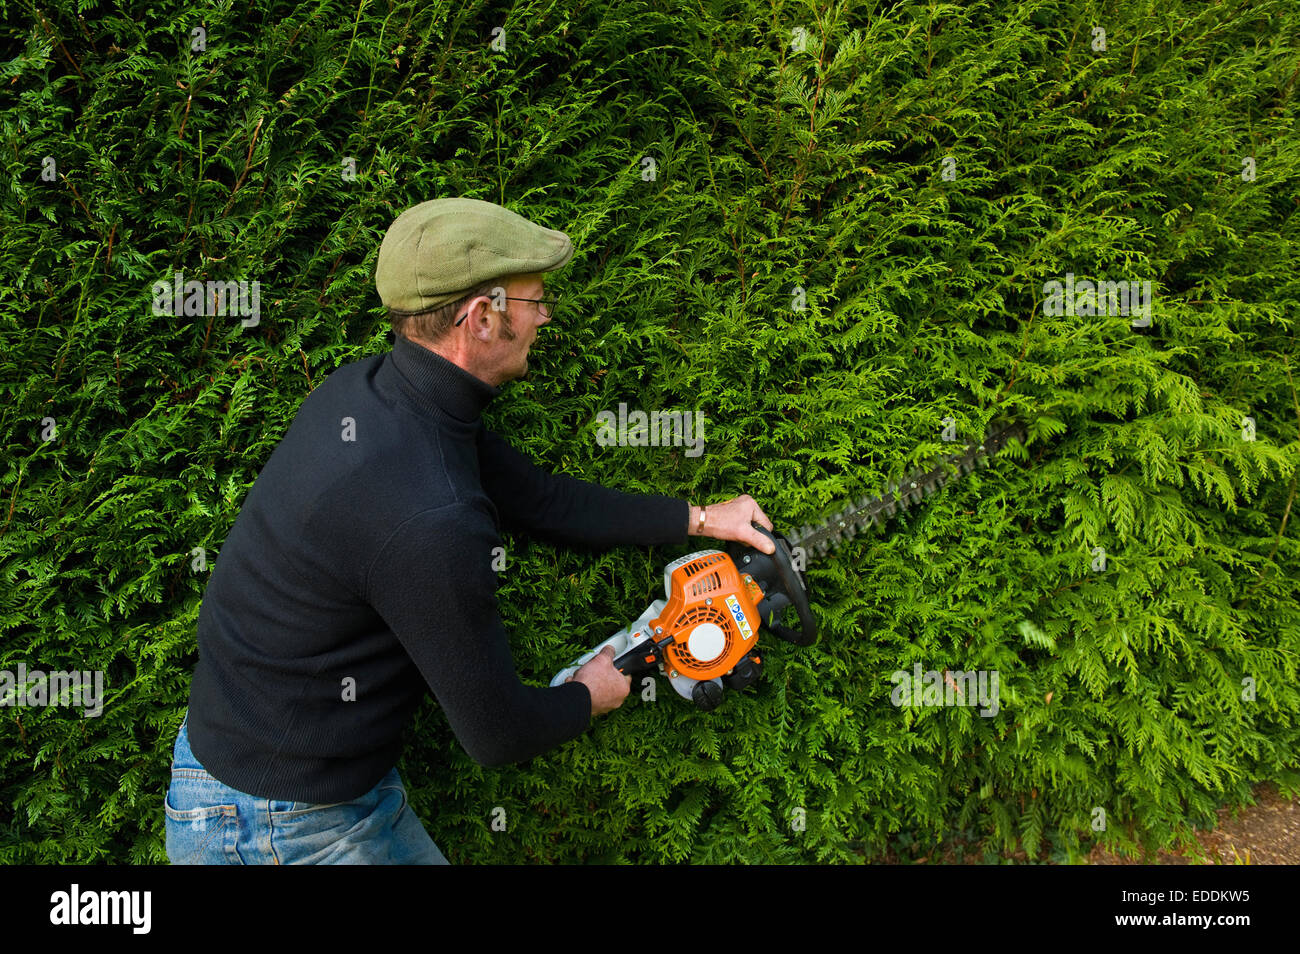 A man trimming a thick green hedge with a motorized hedge trimmer. - Stock Image